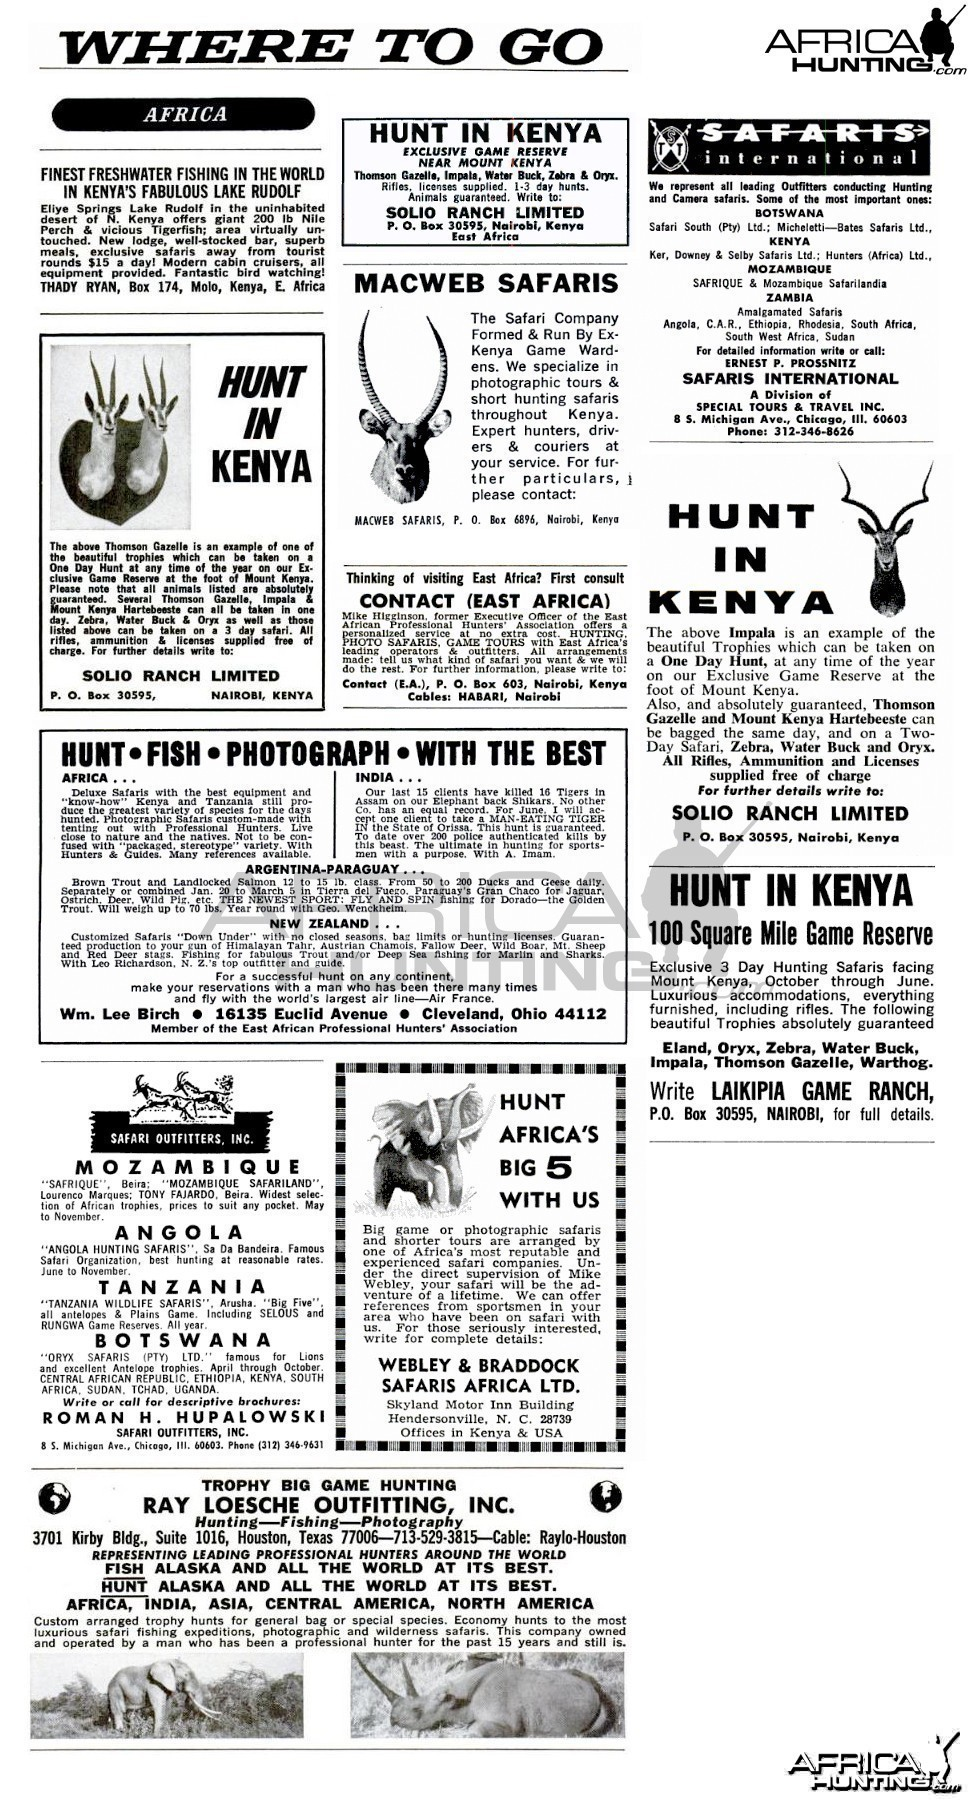 Compilation of Old Ads Promoting Hunting in Kenya